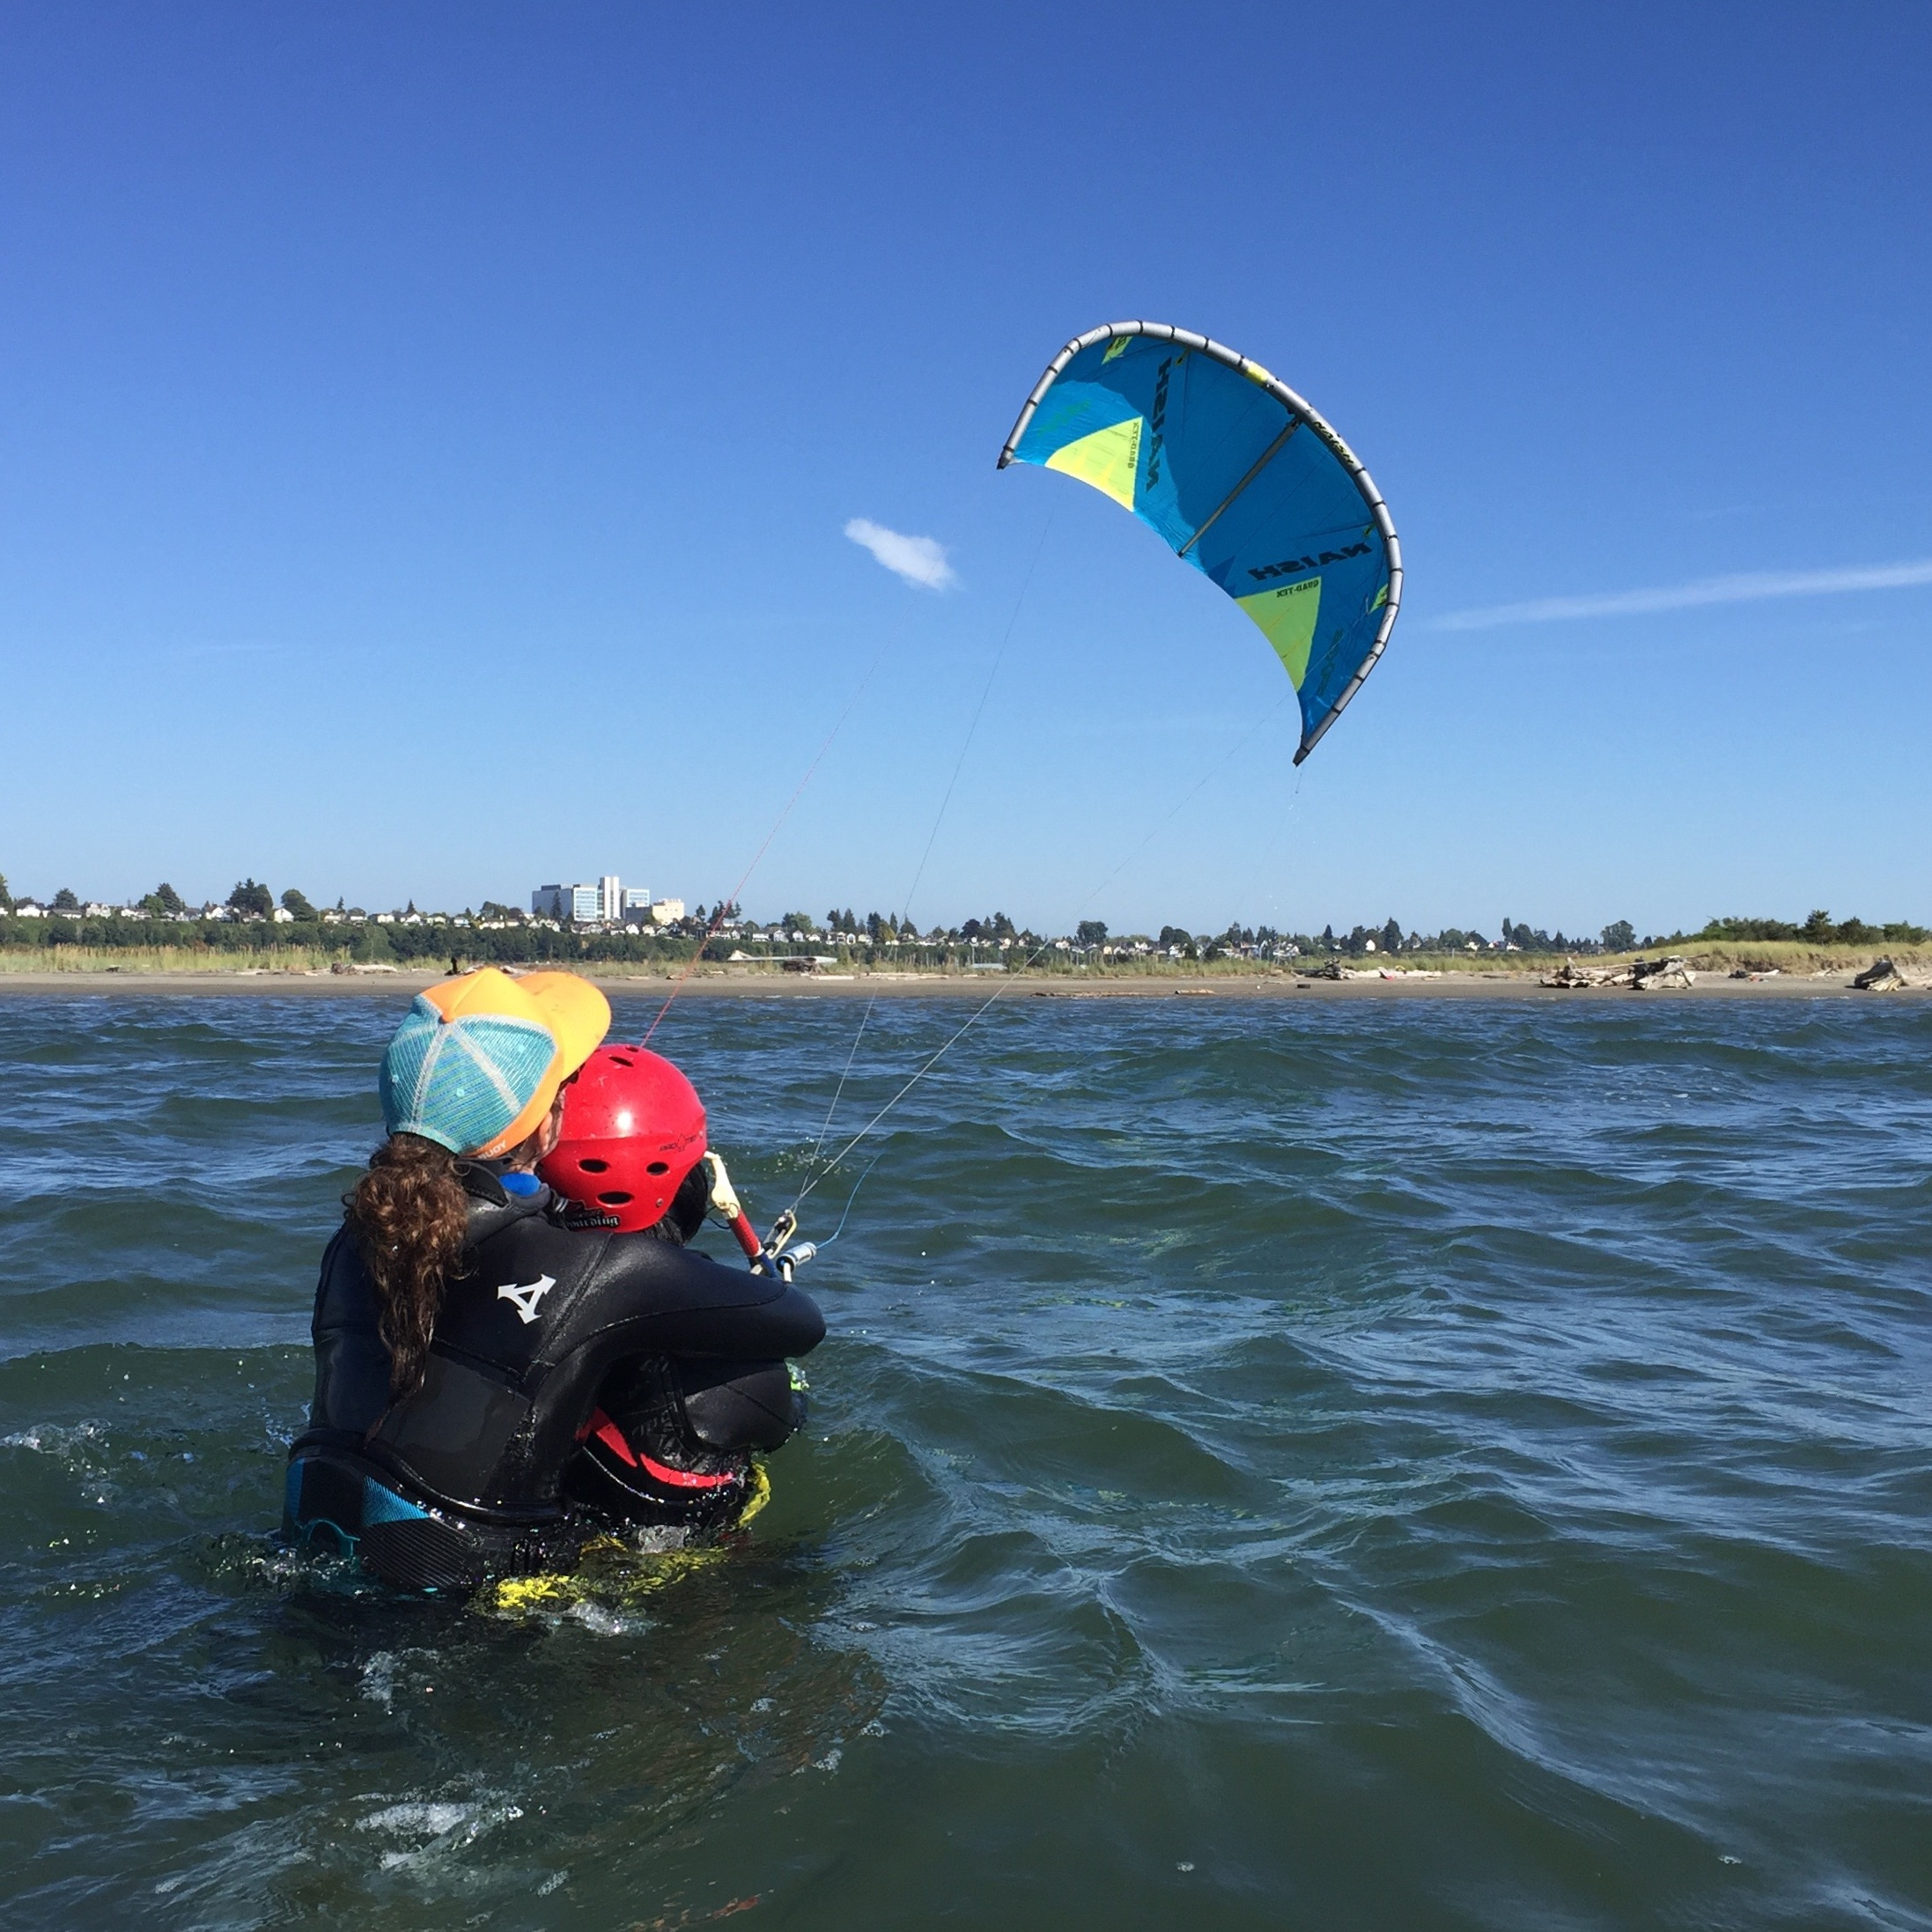 Learning to Fly   Becoming a Kiteboarder at Jetty Island